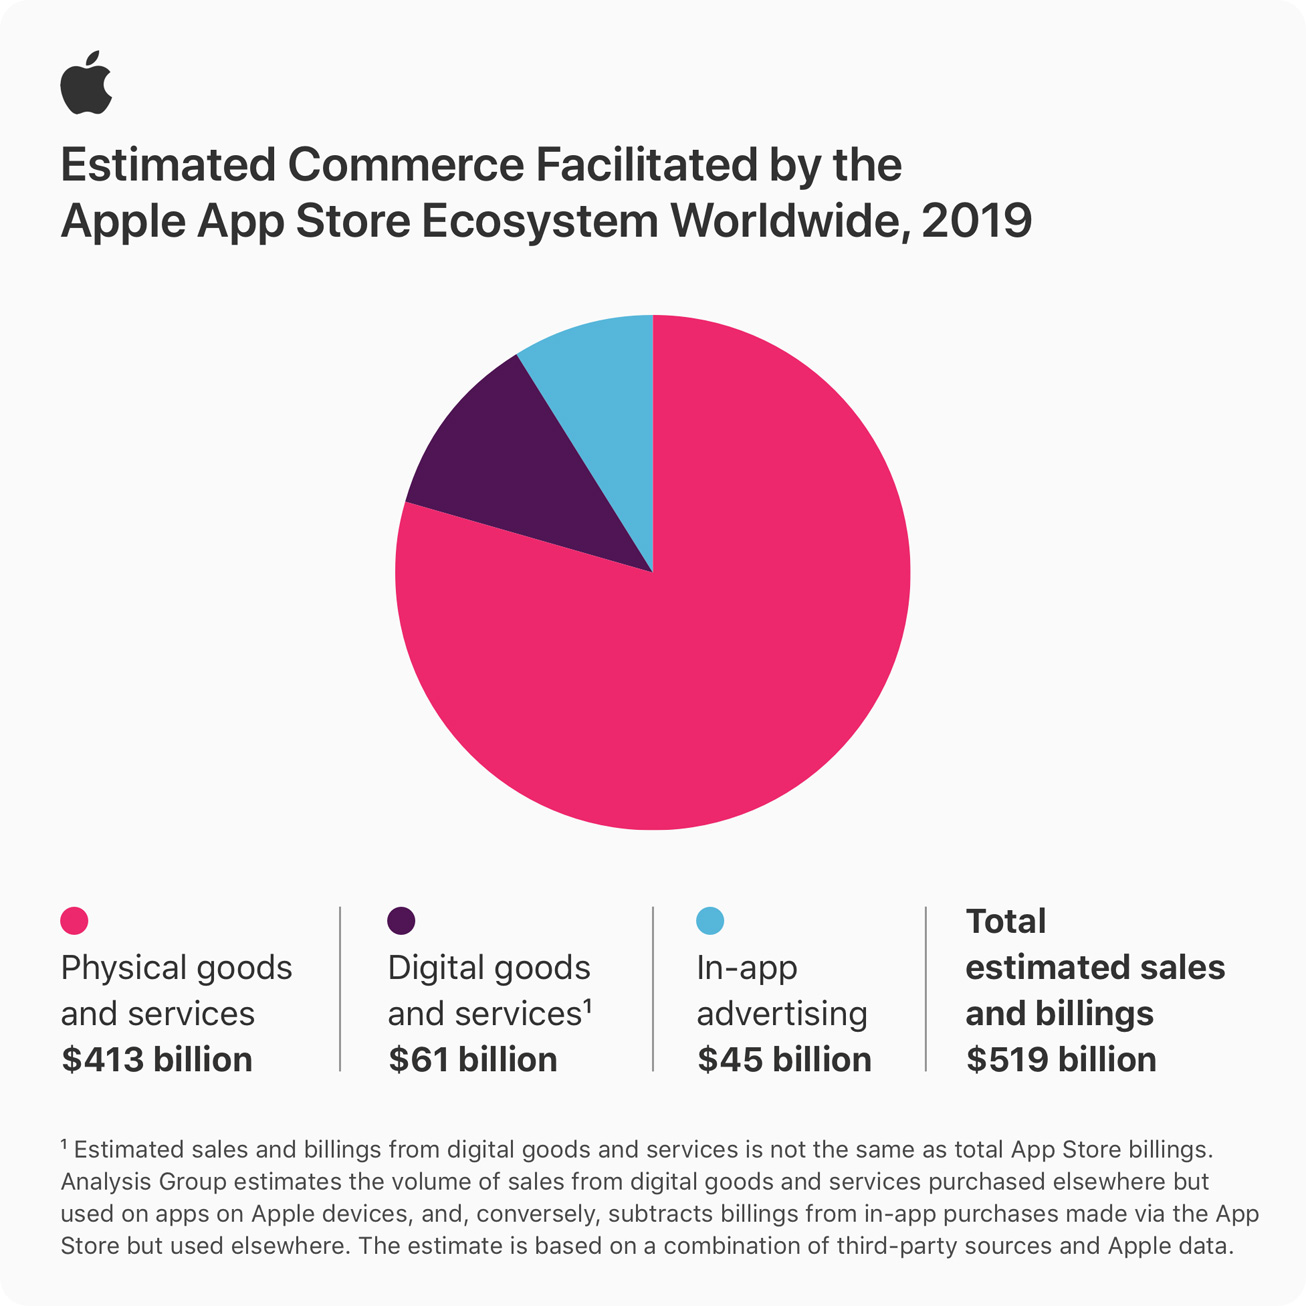 Apple's App Store ecosystem facilitated over half a trillion dollars in commerce in 2019